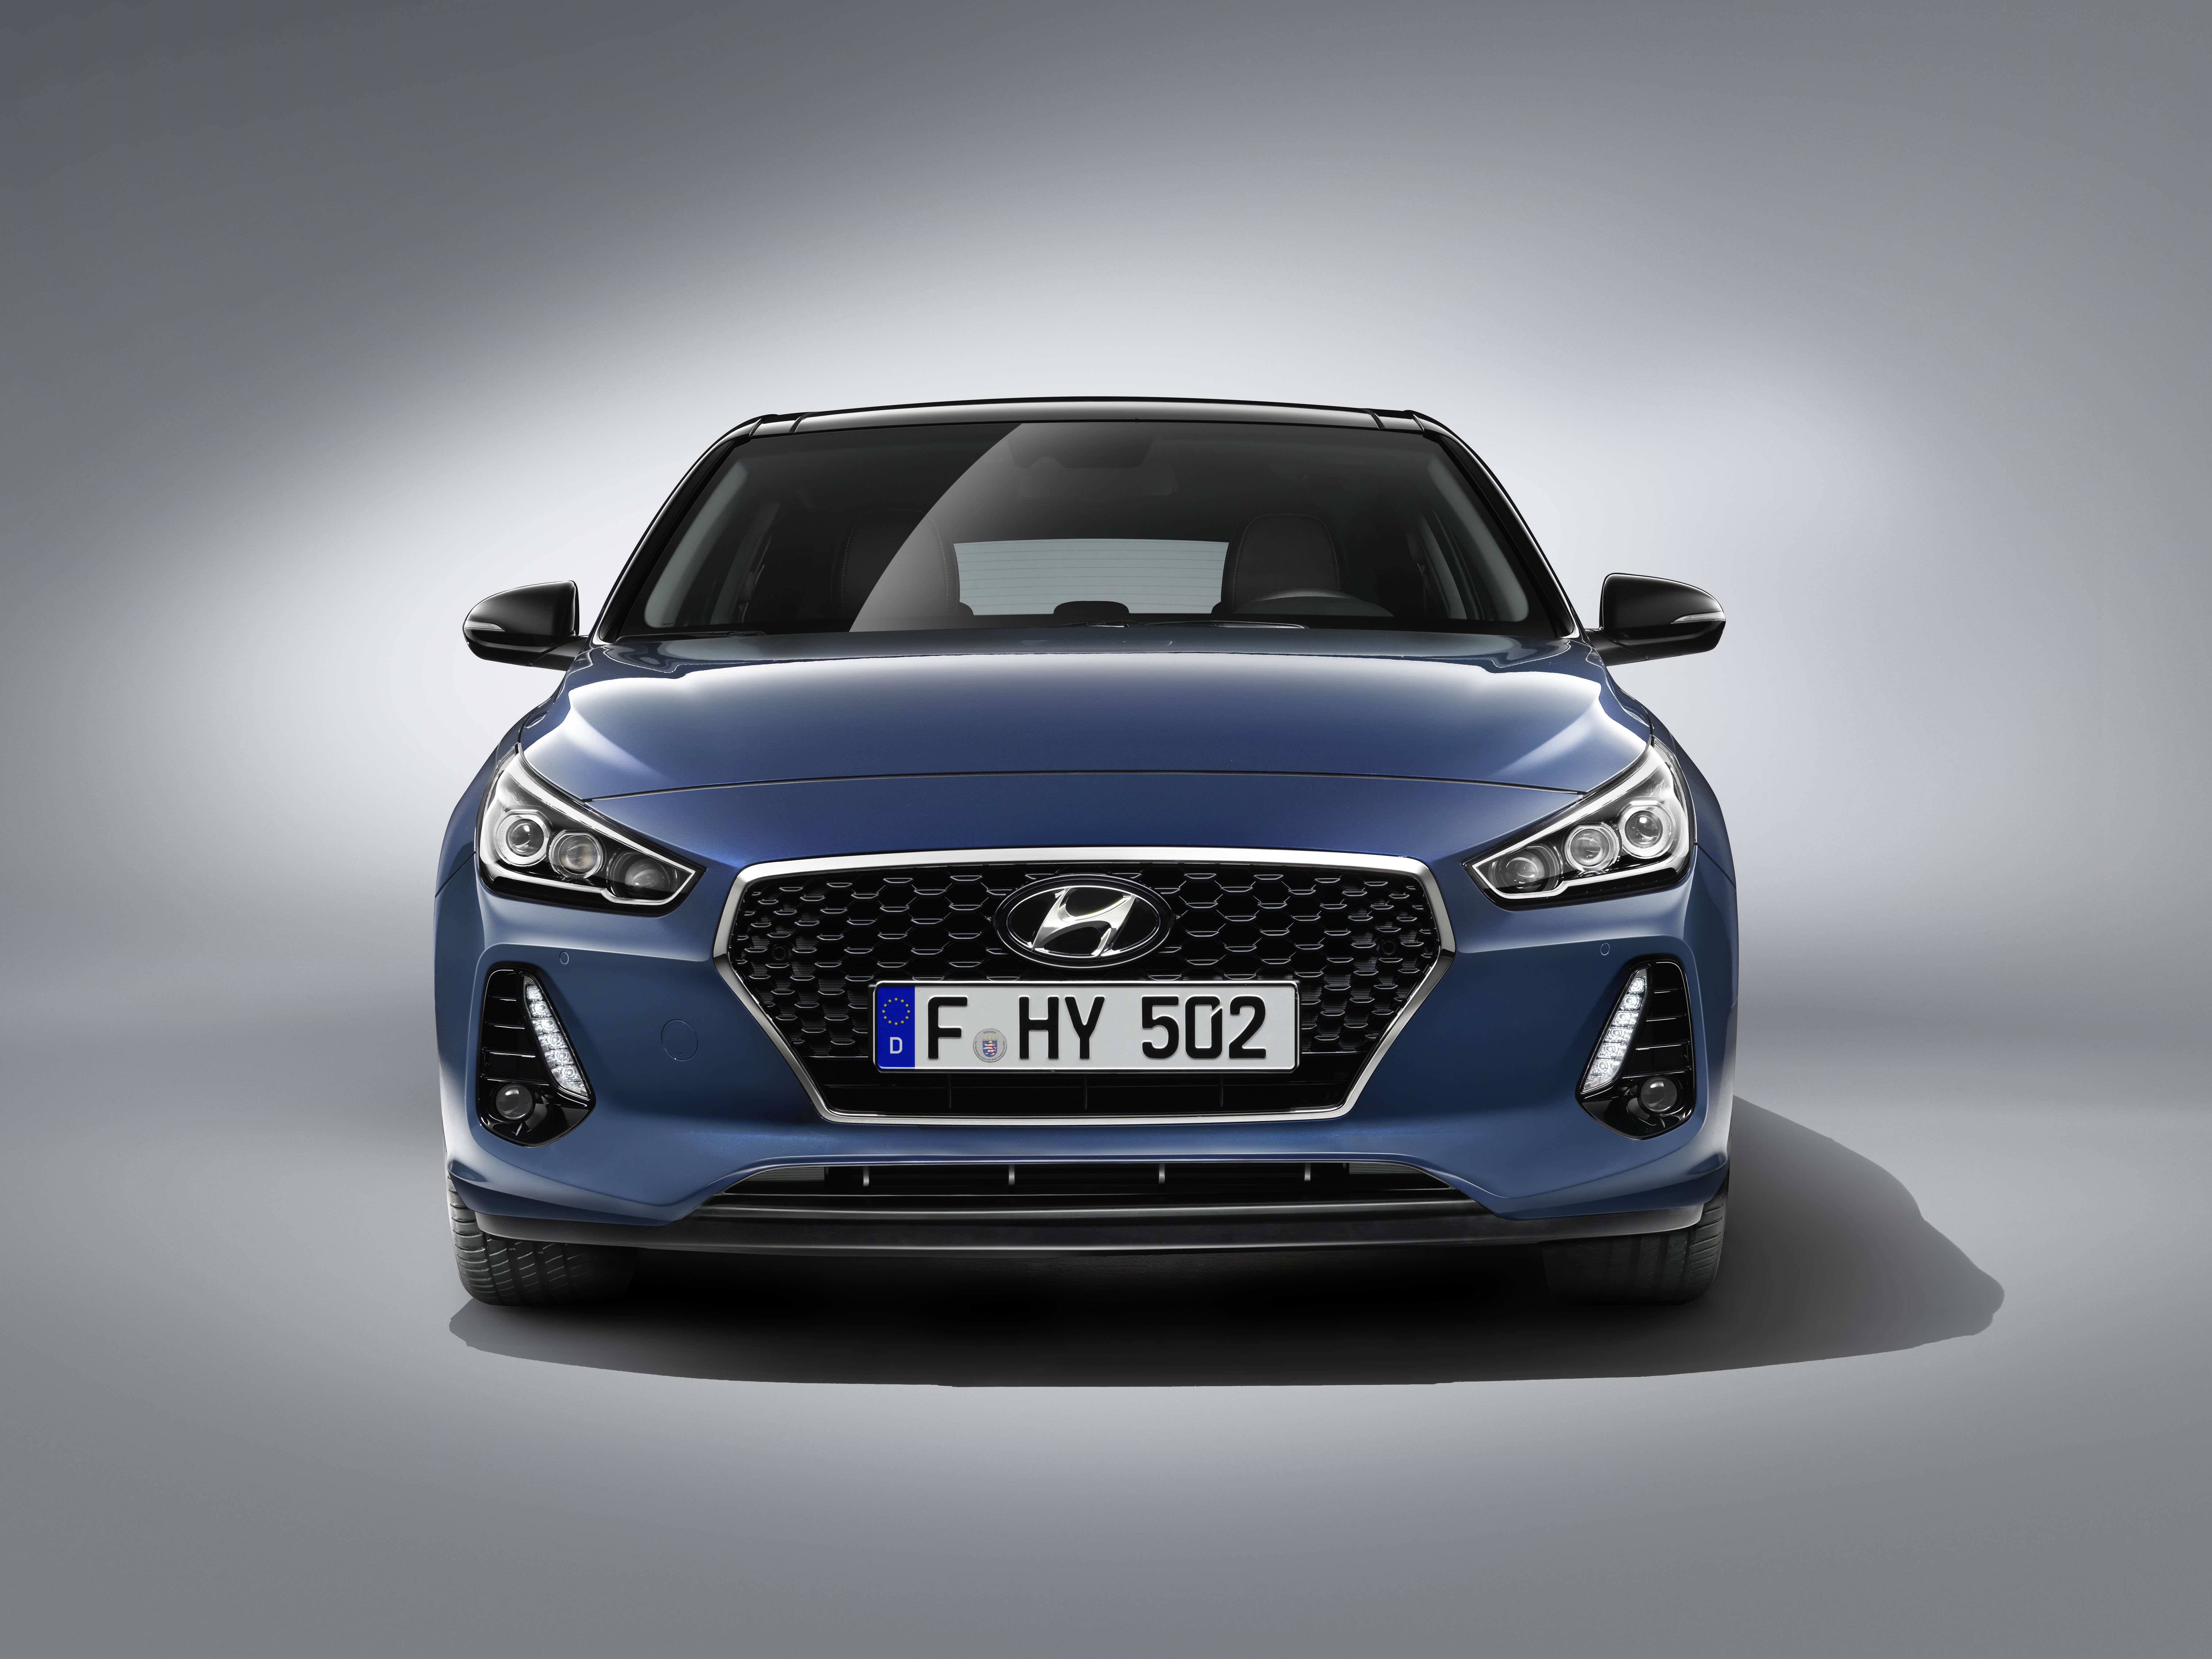 Hyundai is looking into potential new engine technology to increase efficiency.